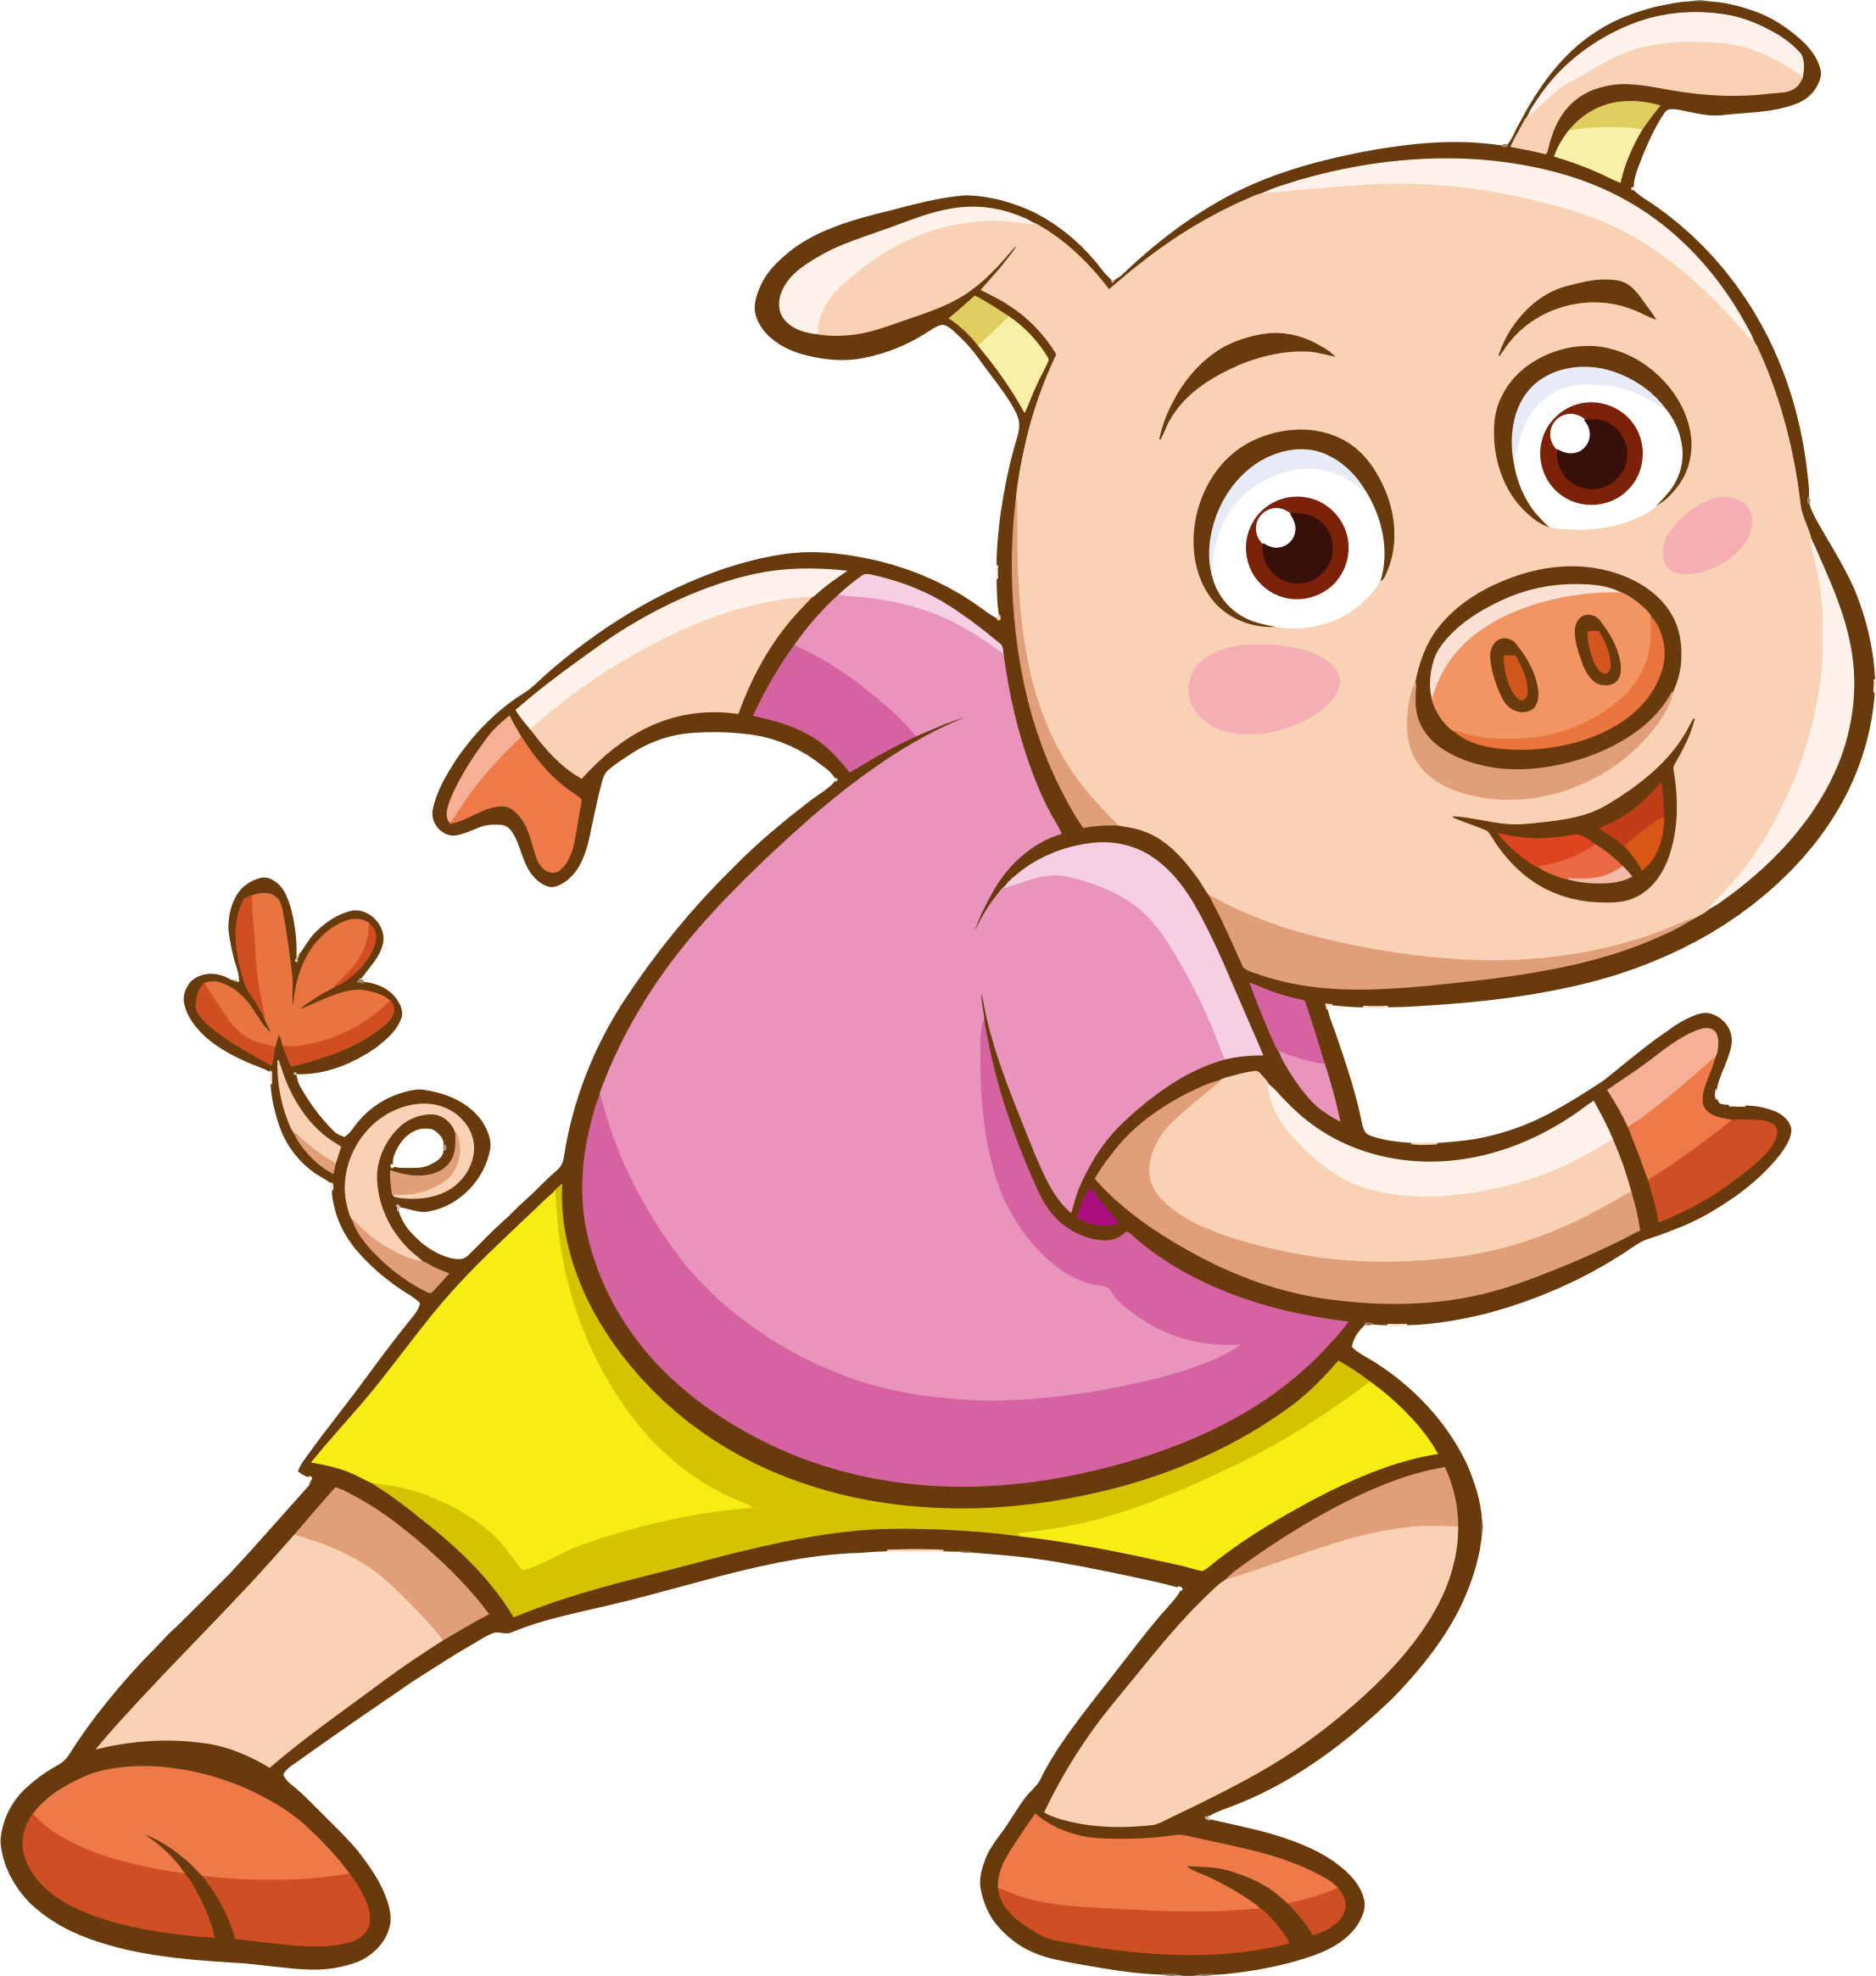 Cartoon Pig by GDJ